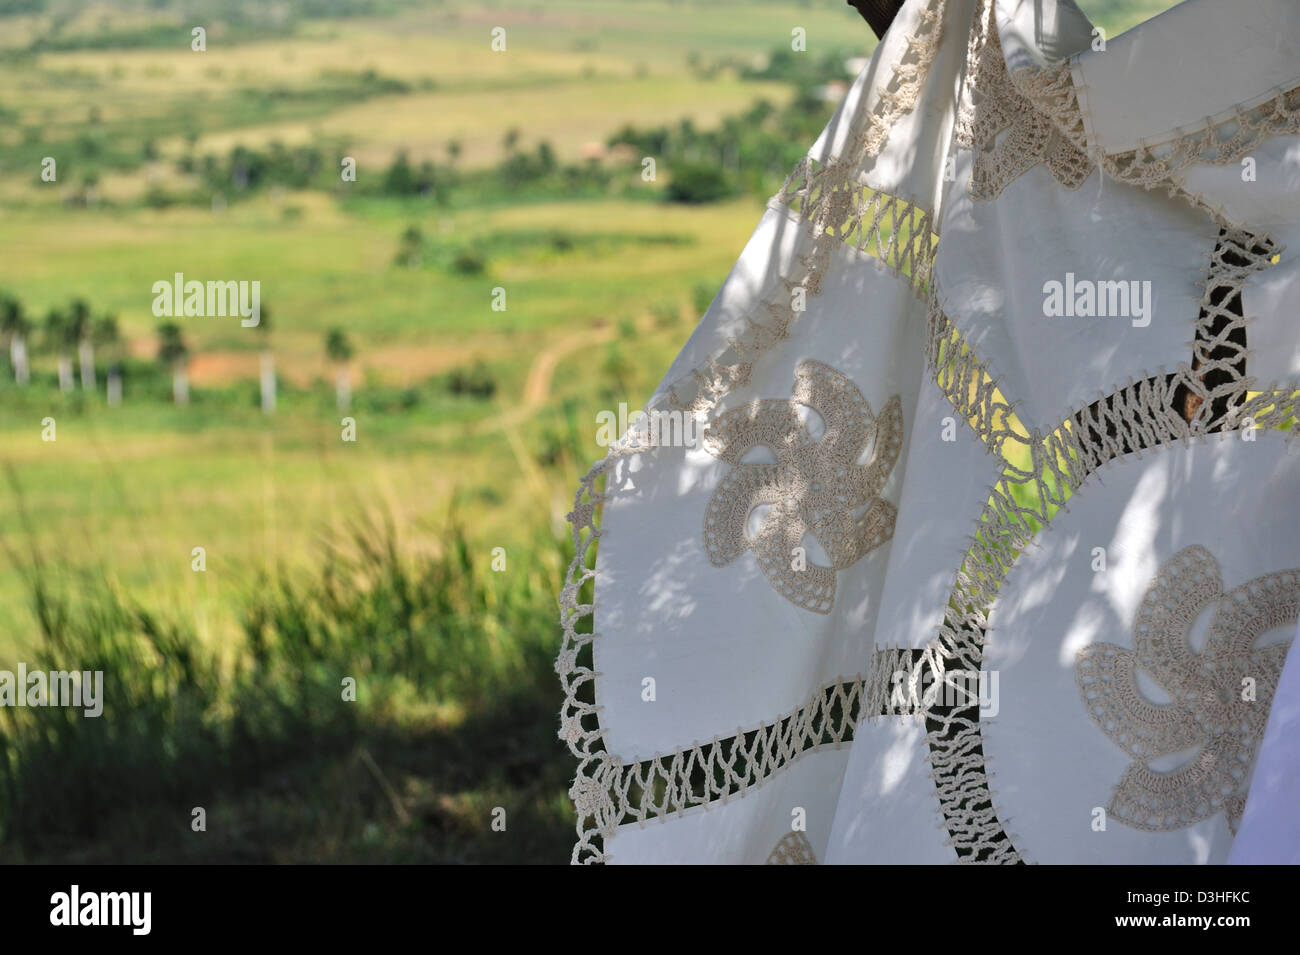 Hand made cloths for sale, Sugar Mills Valley, Cuba - Stock Image